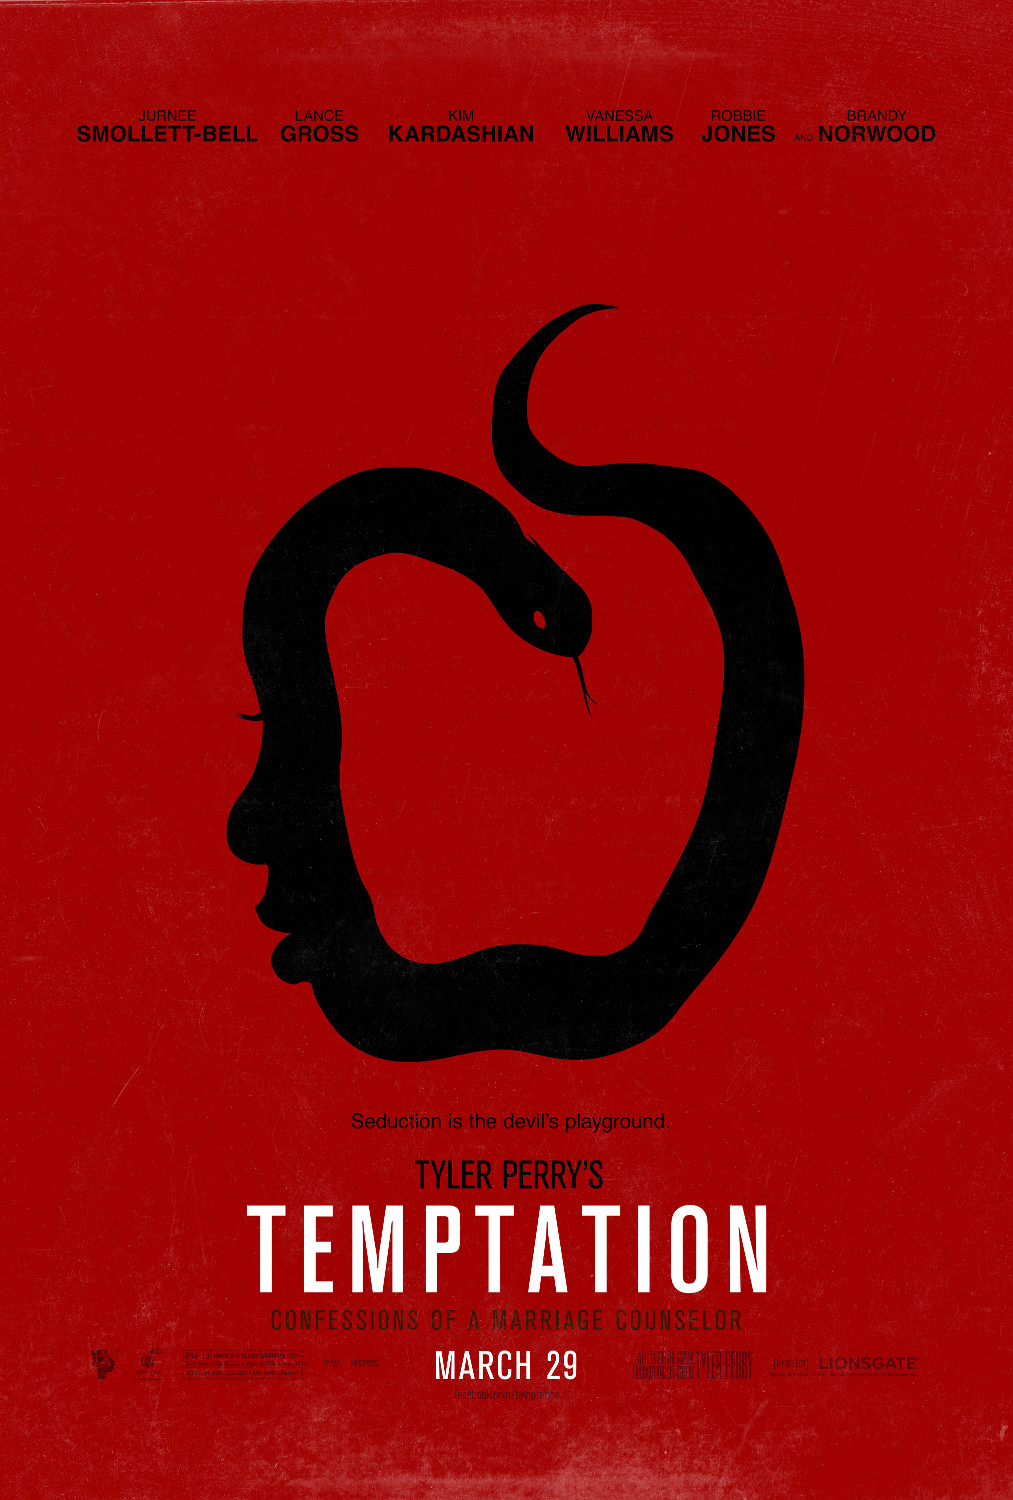 Tyler Perry's Temptation 2013 movie